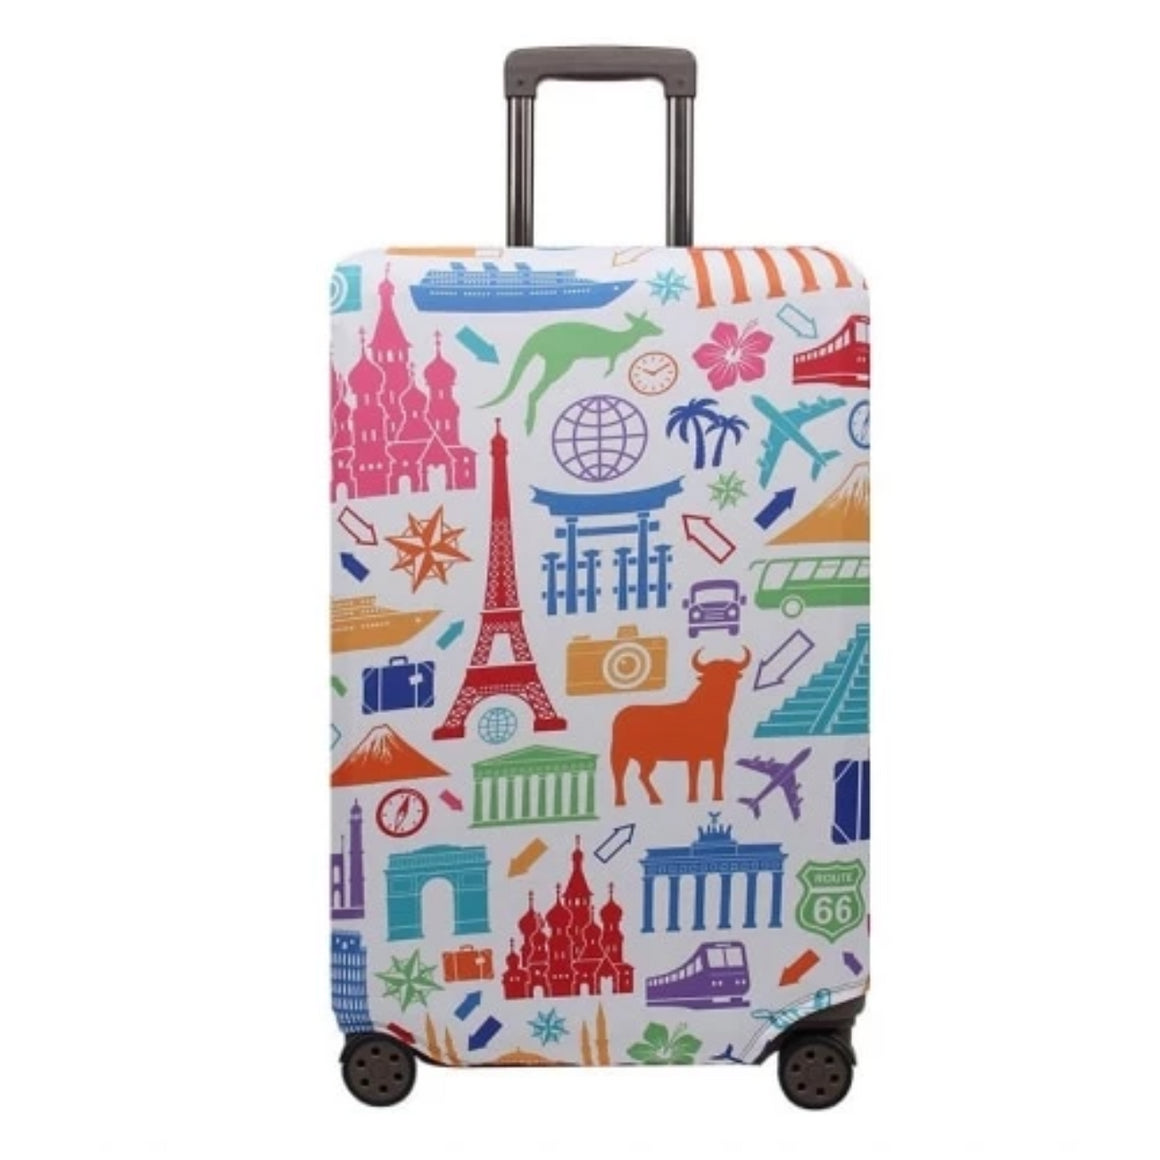 Flamingo Pattern Fashion Suitcase Case Trolley Case Dust Cover Travel Accessories Fit 18-32 Size Luggage Protection Cover